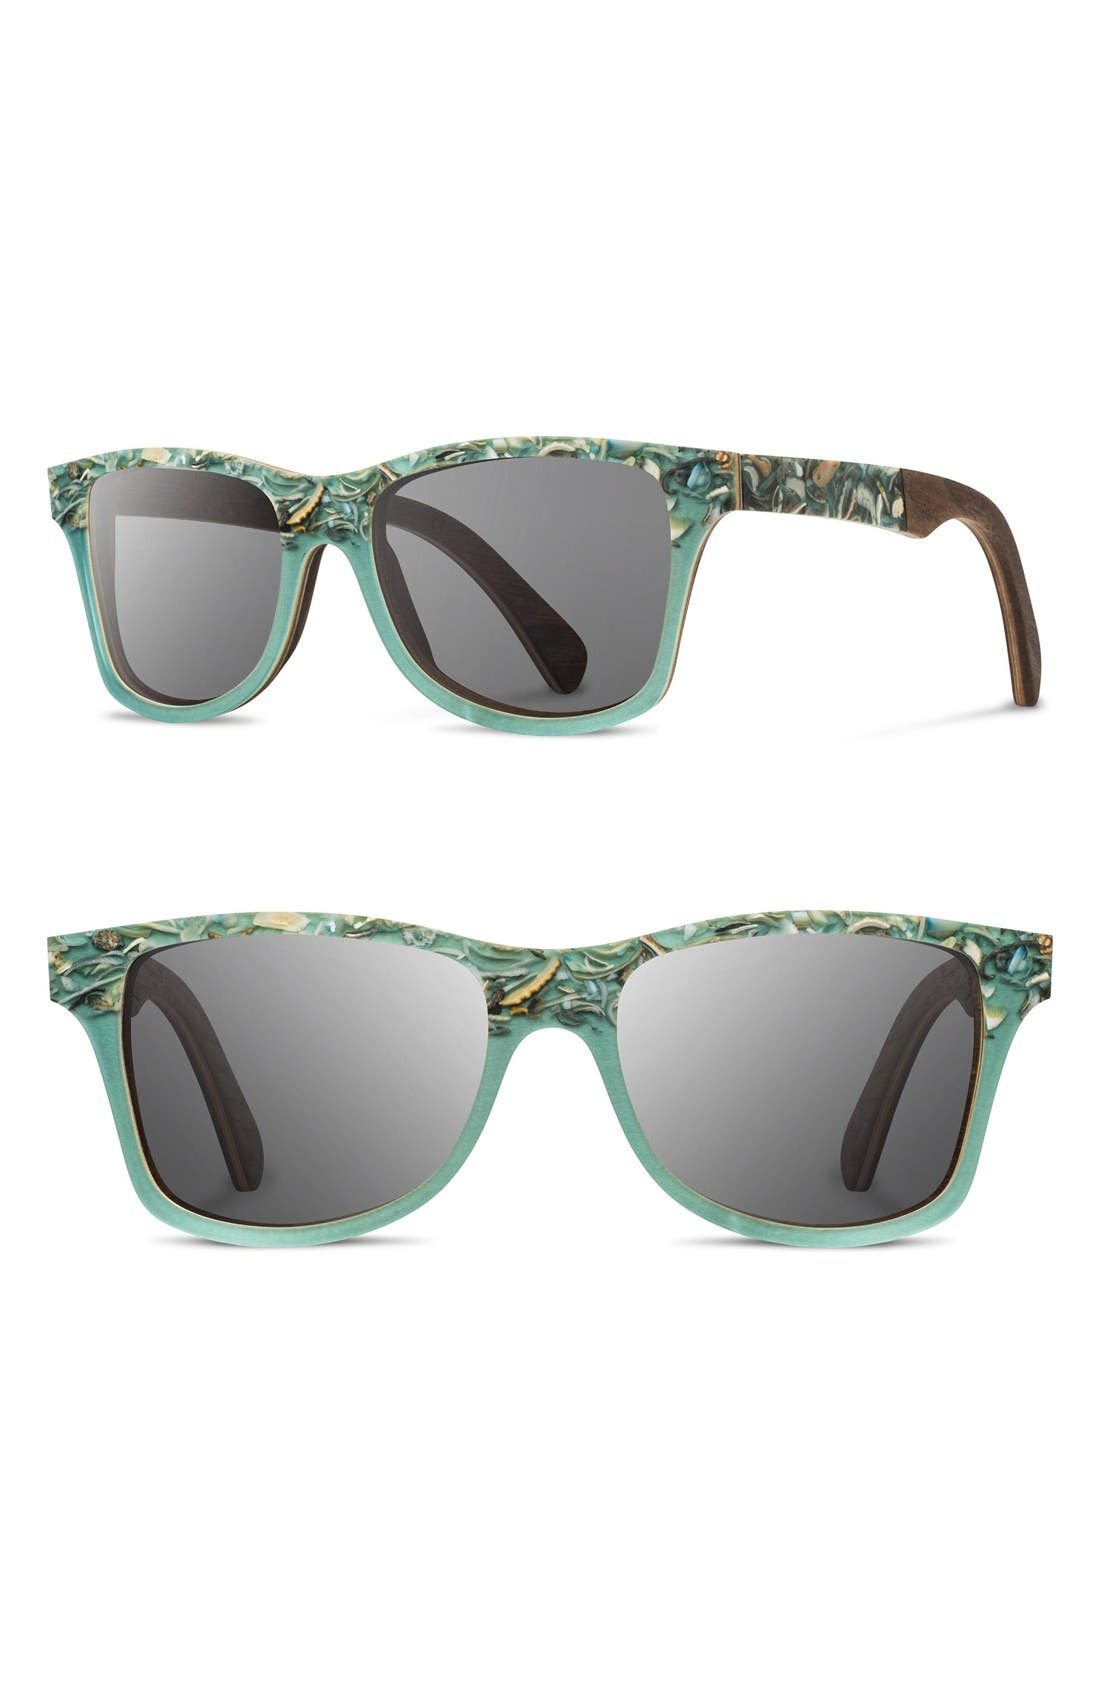 Shwood 'Canby' 55mm Polarized Seashell & Wood Sunglasses